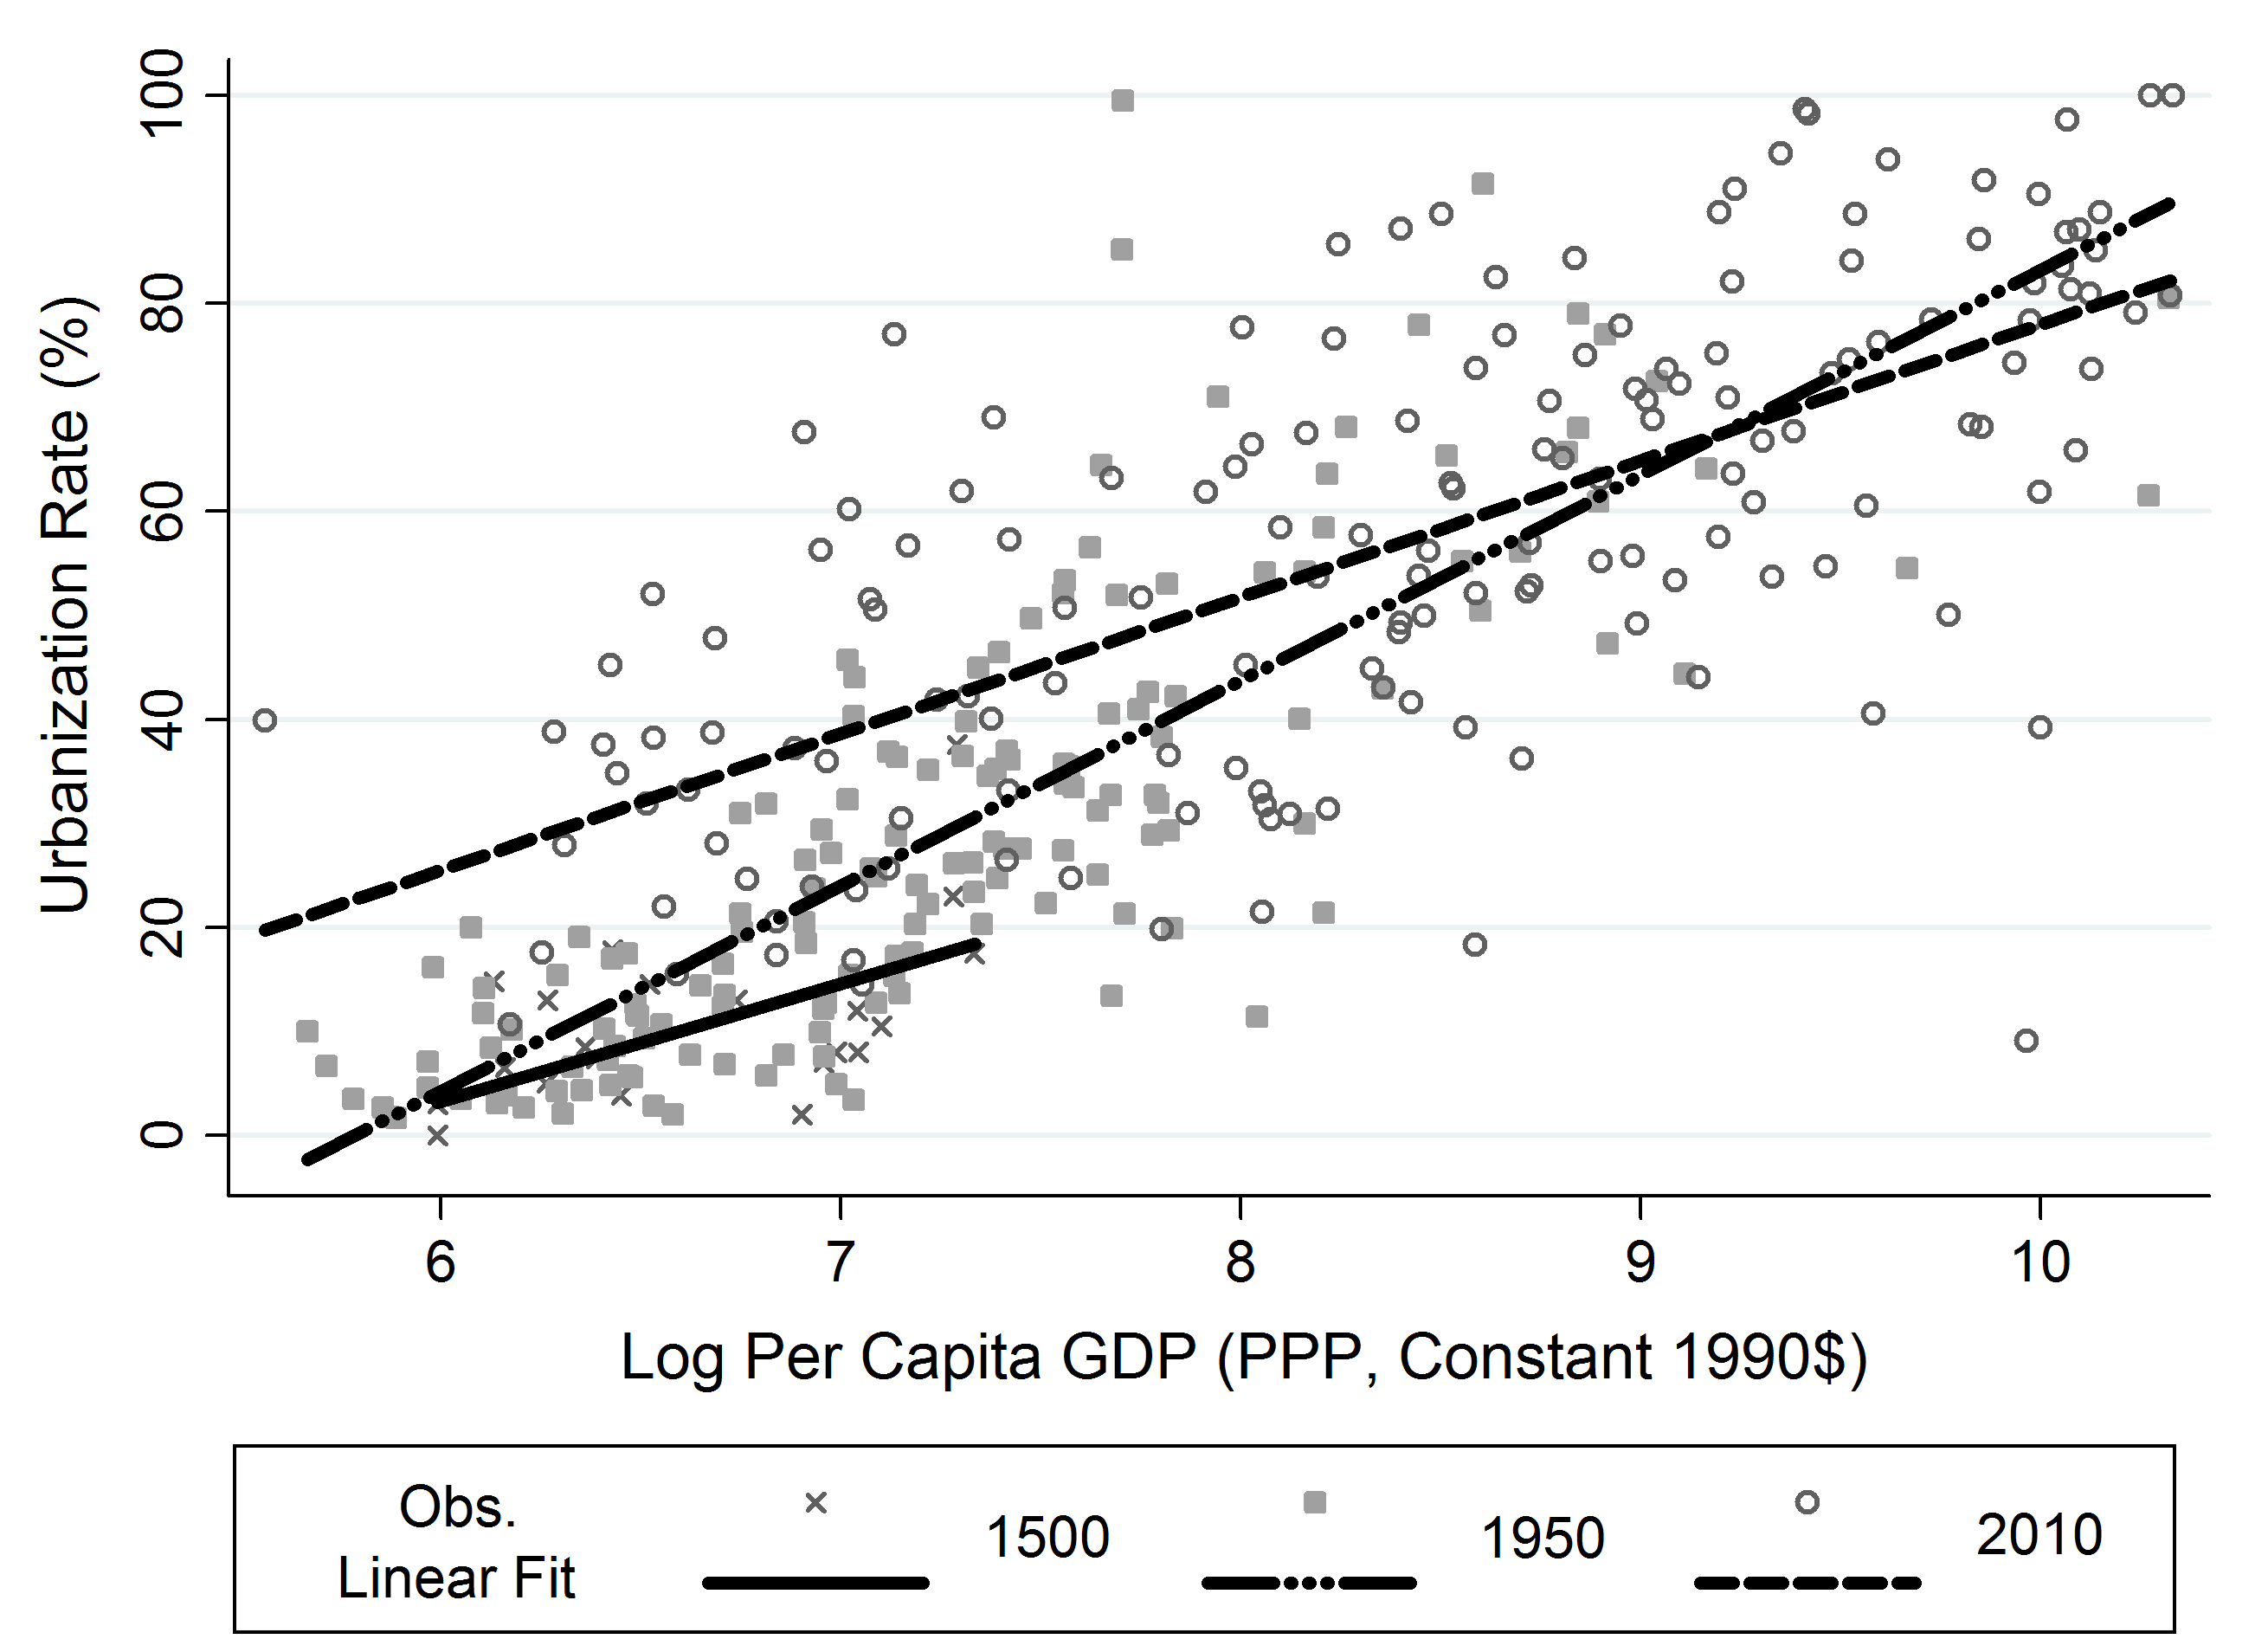 Urbanization and GDP per Capita Over Time